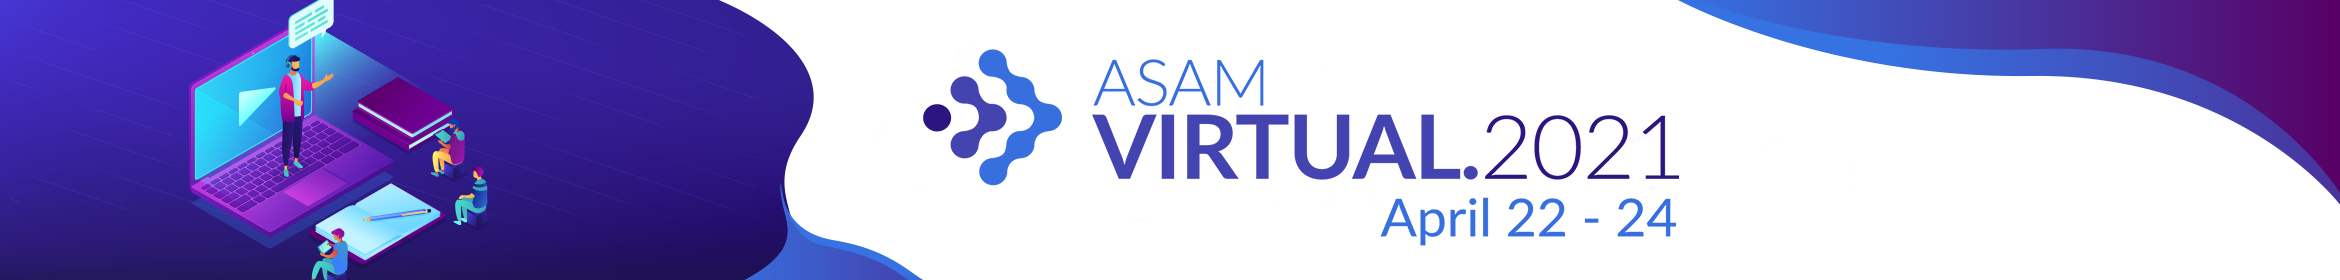 ASAM Virtual 2021 Main banner